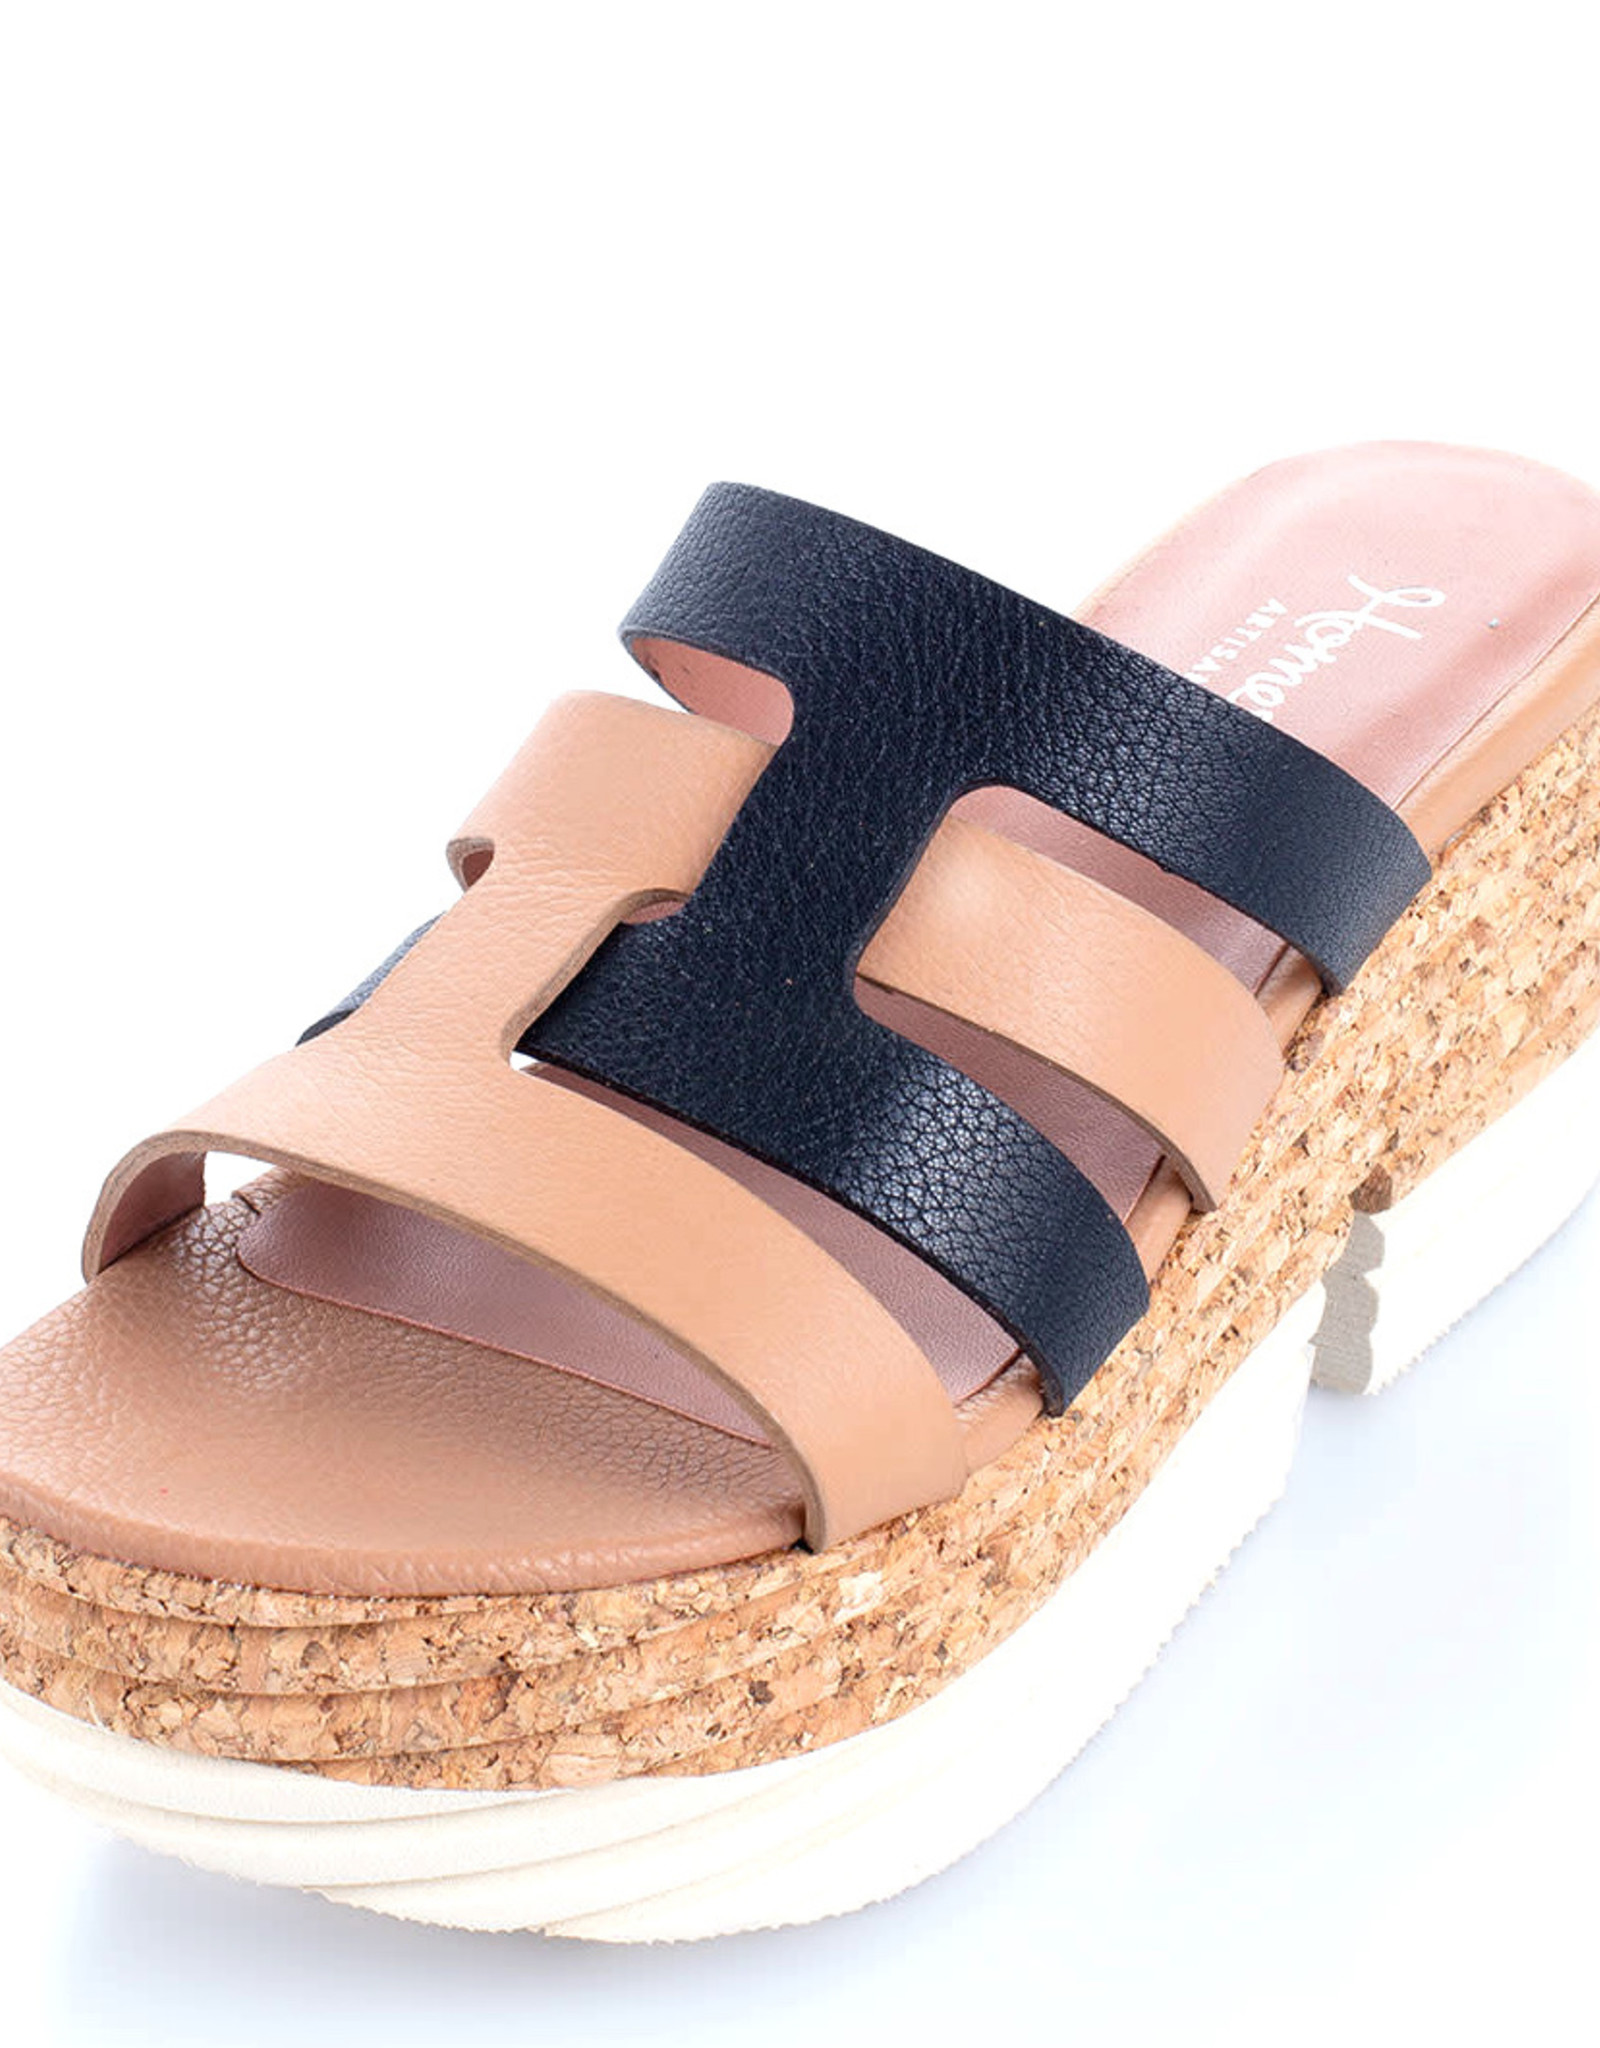 HOMERS Platform Cork Slide